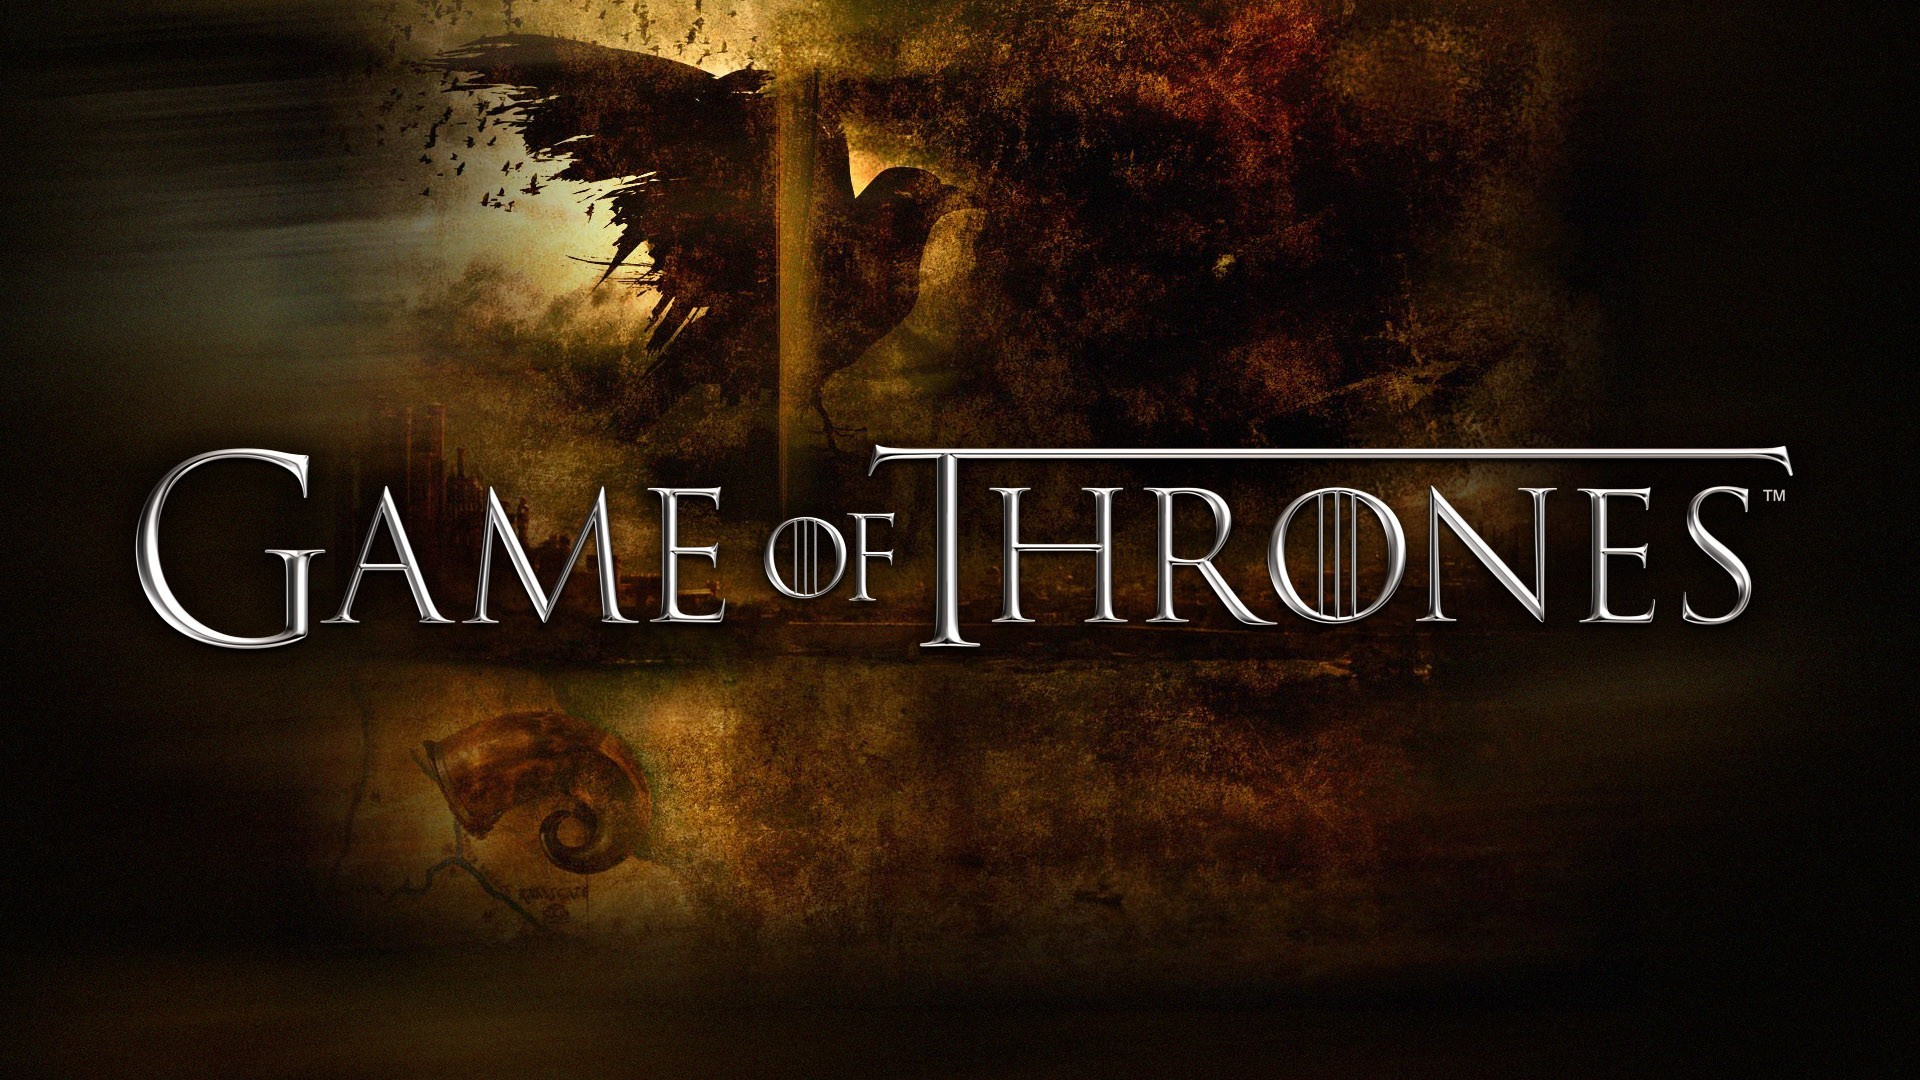 tvshows game of thrones